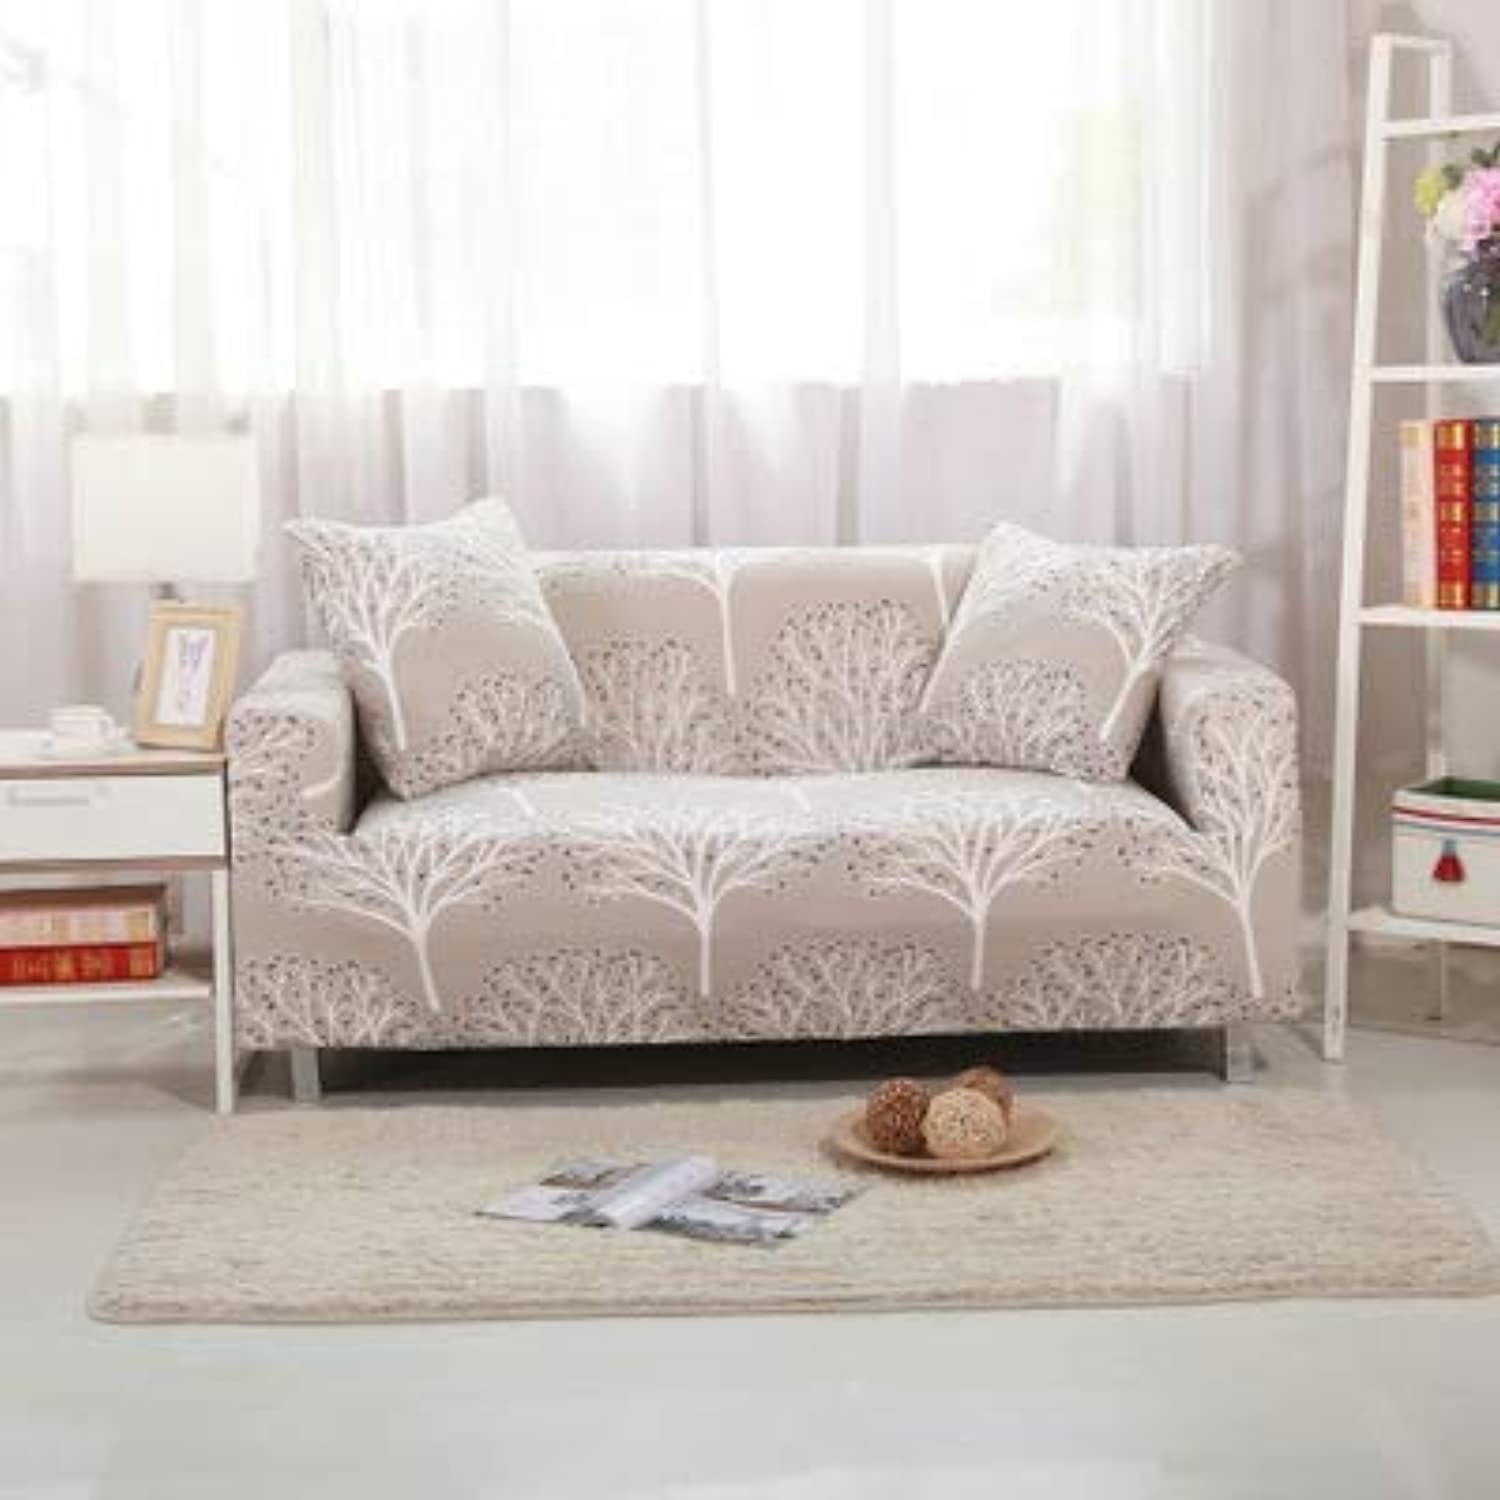 Farmerly WLIARLEO Universal Sofa Cover Big Elasticity for Couch ...